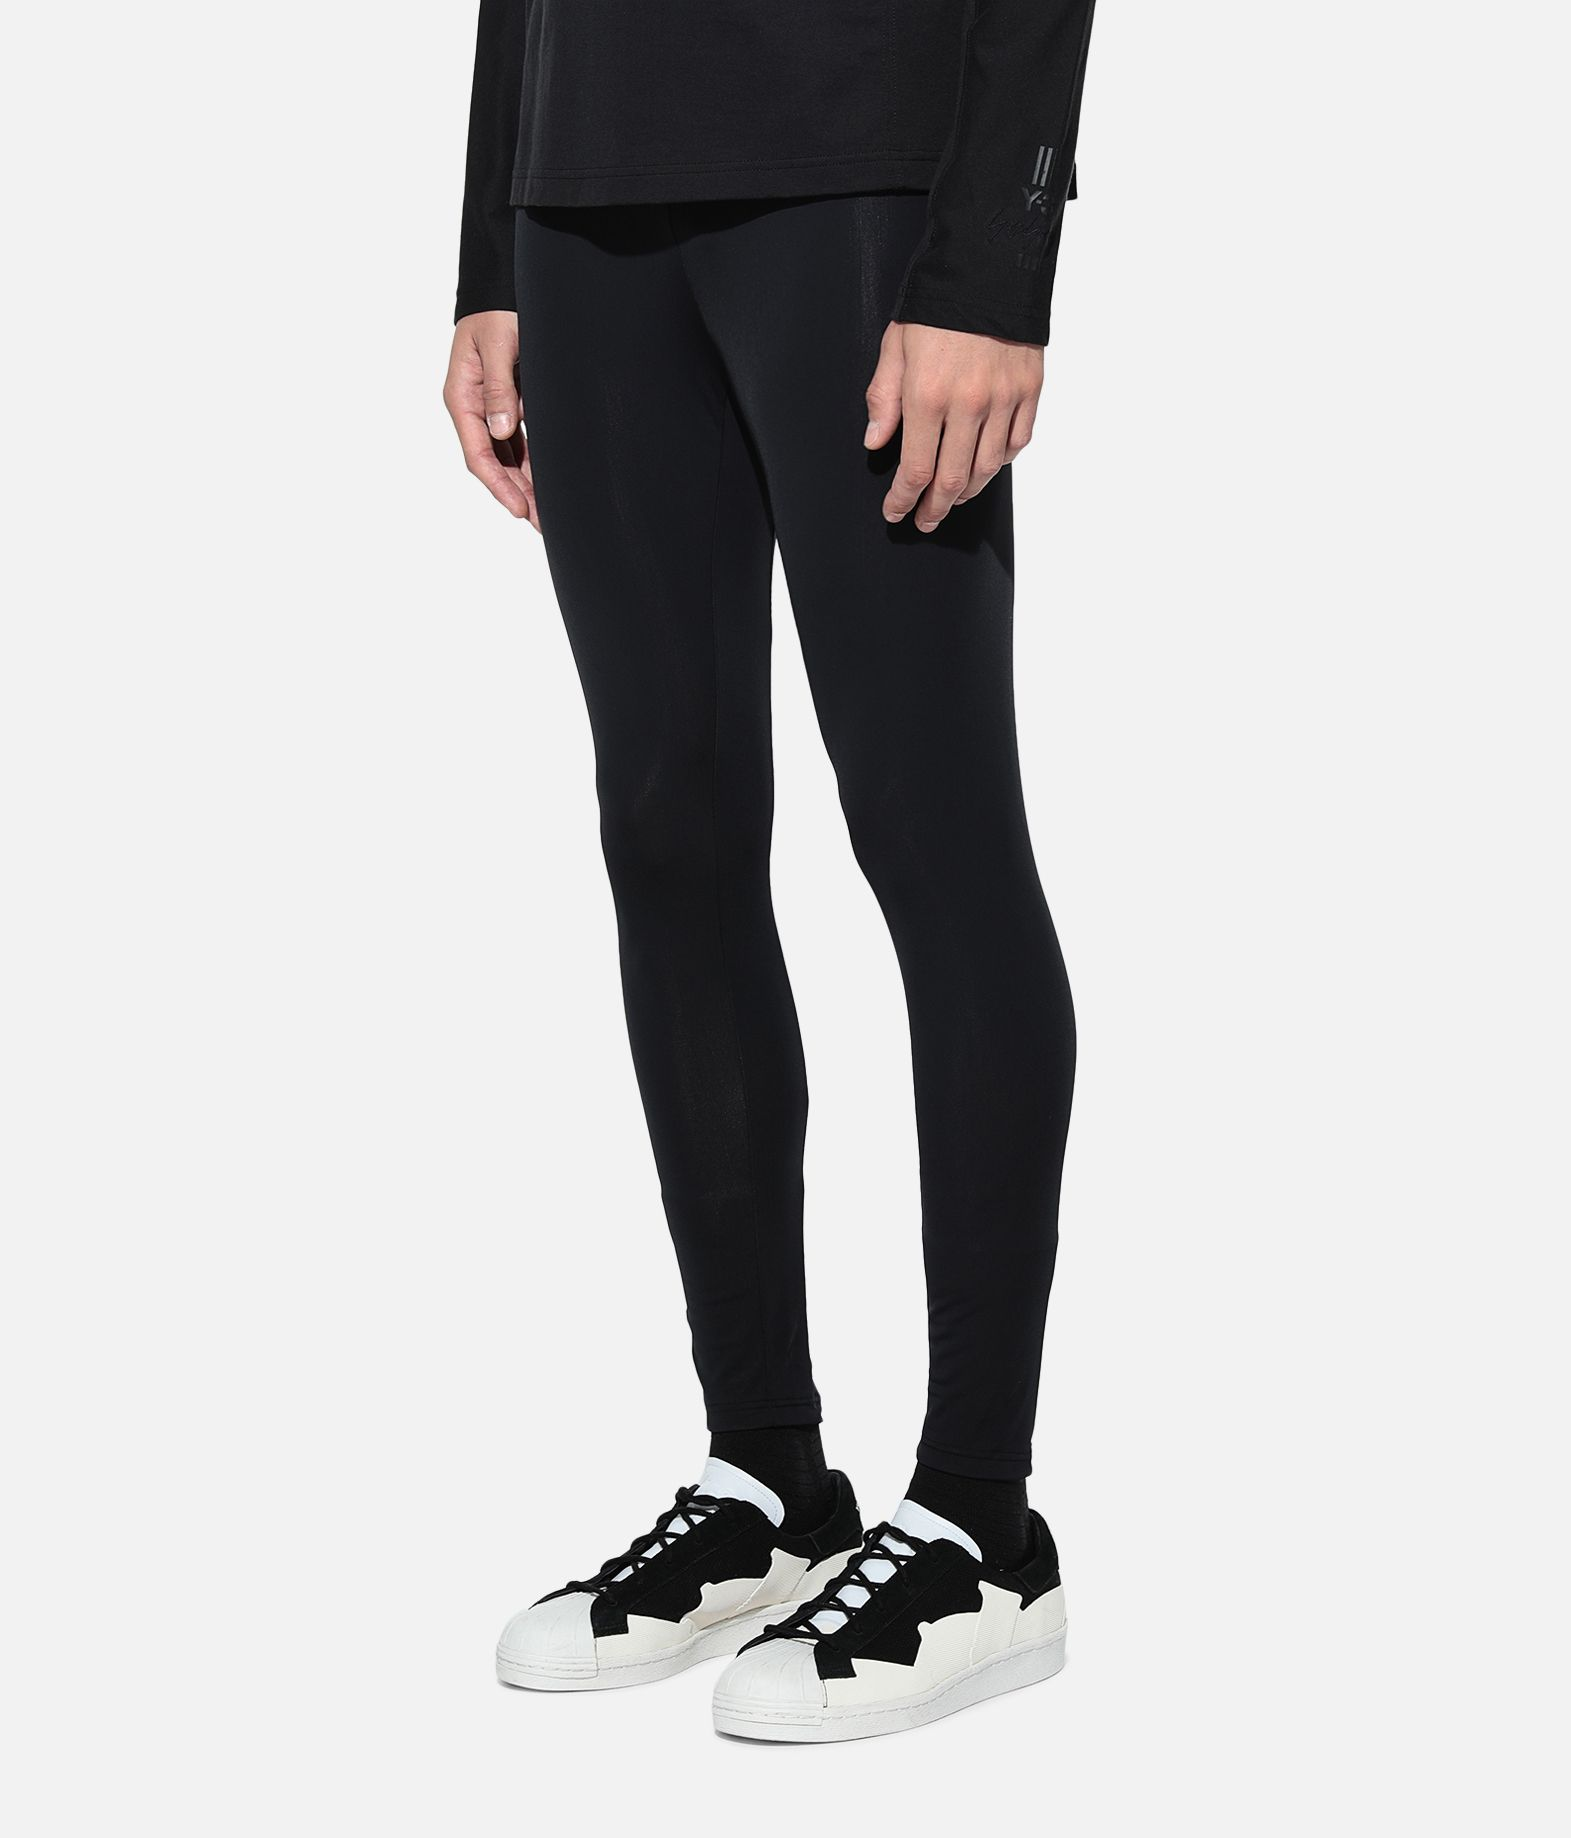 Y-3 Y-3 New Classic Tights Leggings Man e